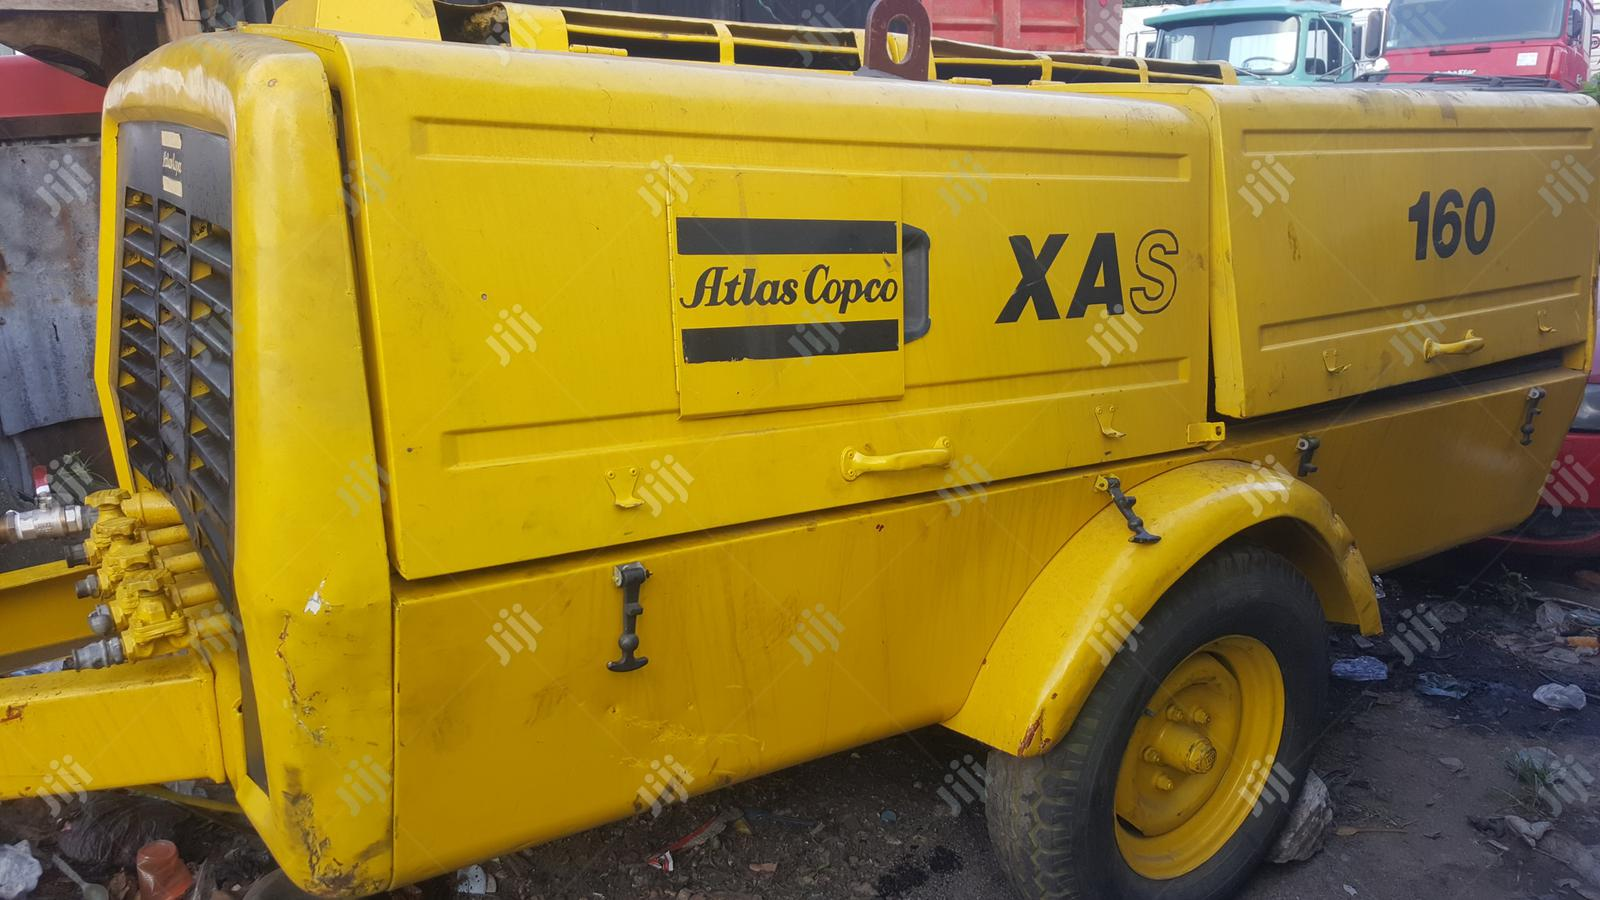 Tokunbo XAS 160 ATLAS Copco Air Compressor Deutz Engine